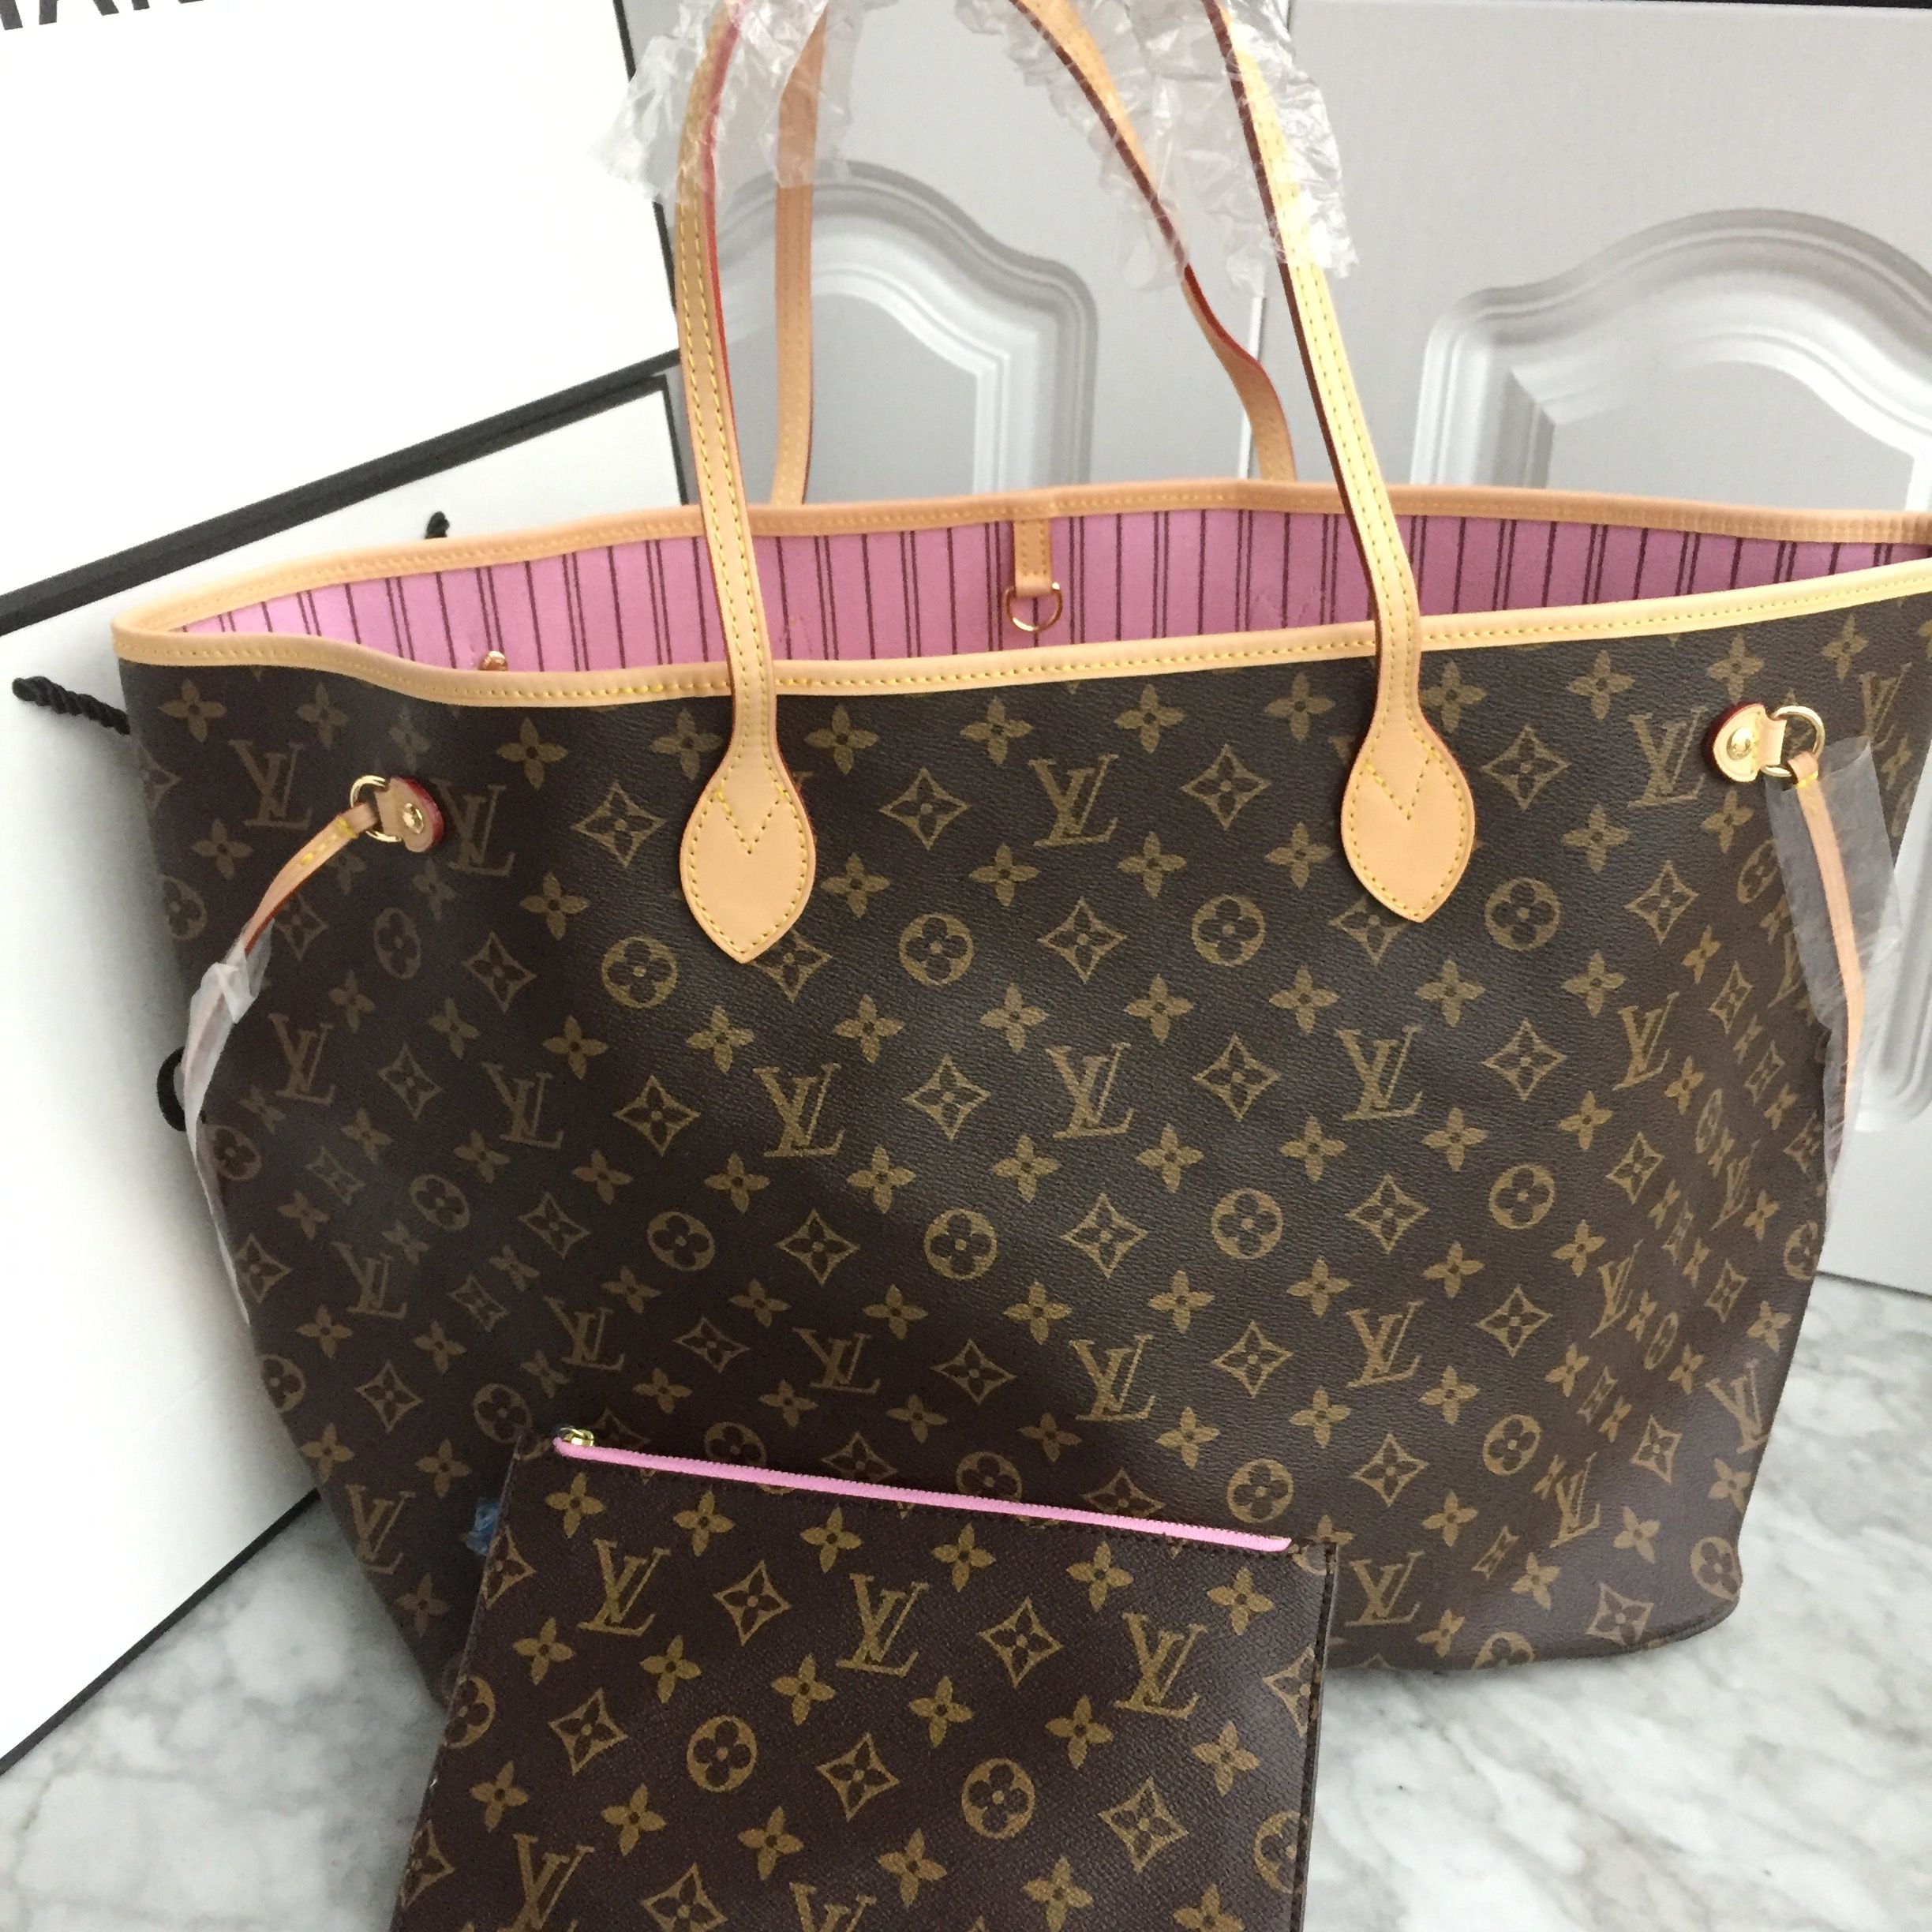 10a67c566e13 Louis Vuitton lv neverfull shopping tote bag monogram with pink interior